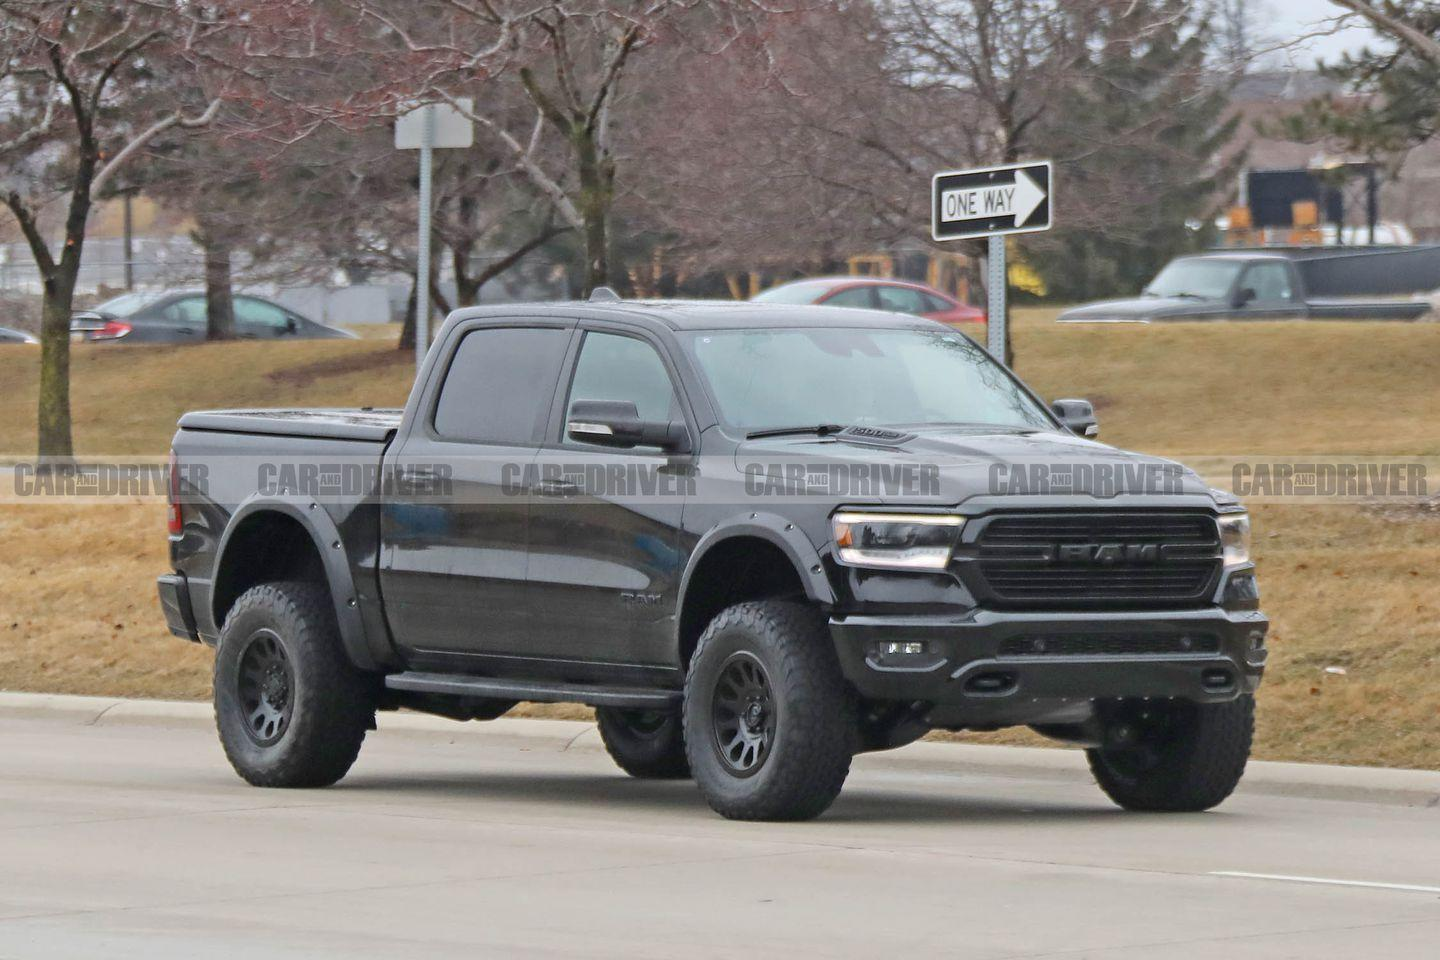 """<p>The <a href=""""https://www.caranddriver.com/news/a15345674/rammer-jammer-desert-hammer-ram-unveils-rebel-trx-concept/"""" rel=""""nofollow noopener"""" target=""""_blank"""" data-ylk=""""slk:Ram Rebel TRX concept"""" class=""""link rapid-noclick-resp"""">Ram Rebel TRX concept</a> first met the public at the 2016 State Fair of Texas, surprising all in attendance. Ford had been stealing hearts and headlines with its F-150 Raptor production off-roader for few years, and while most inside the industry figured Ram must be working on something, the Ram Rebel TRX concept made it from the design studio to the stage with uncharacteristic secrecy. </p>"""